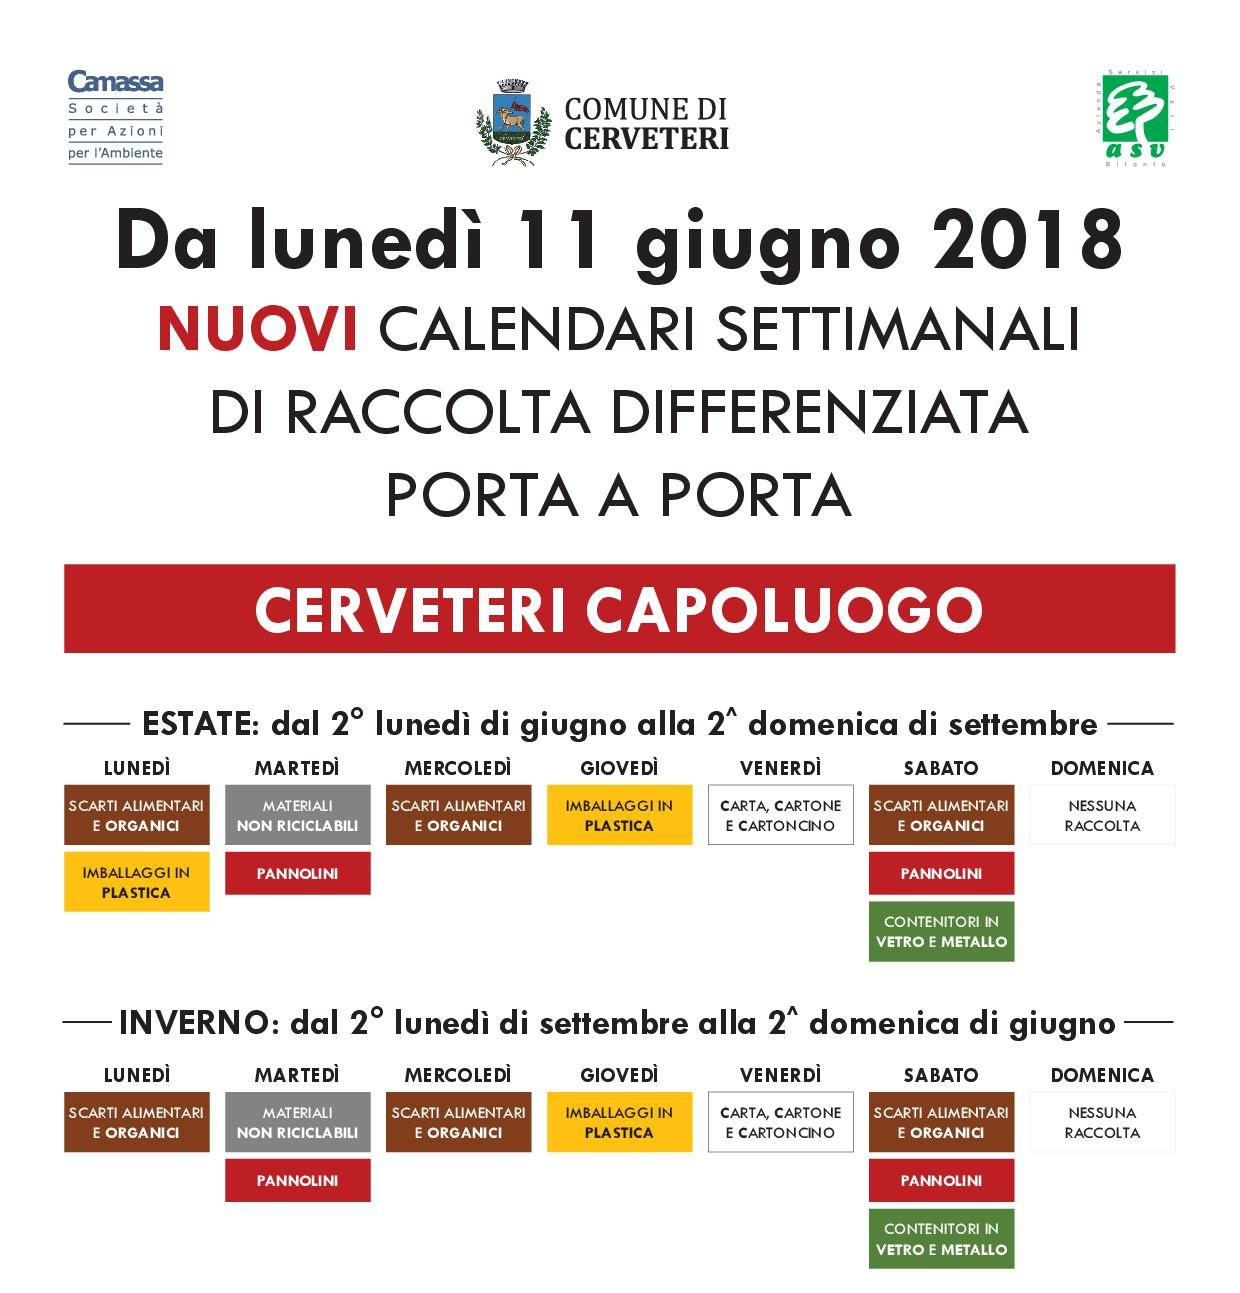 Calendario Raccolta Differenziata Cerveteri.Cerveteri Raccolta Differenziata Da Lunedi In Vigore Il